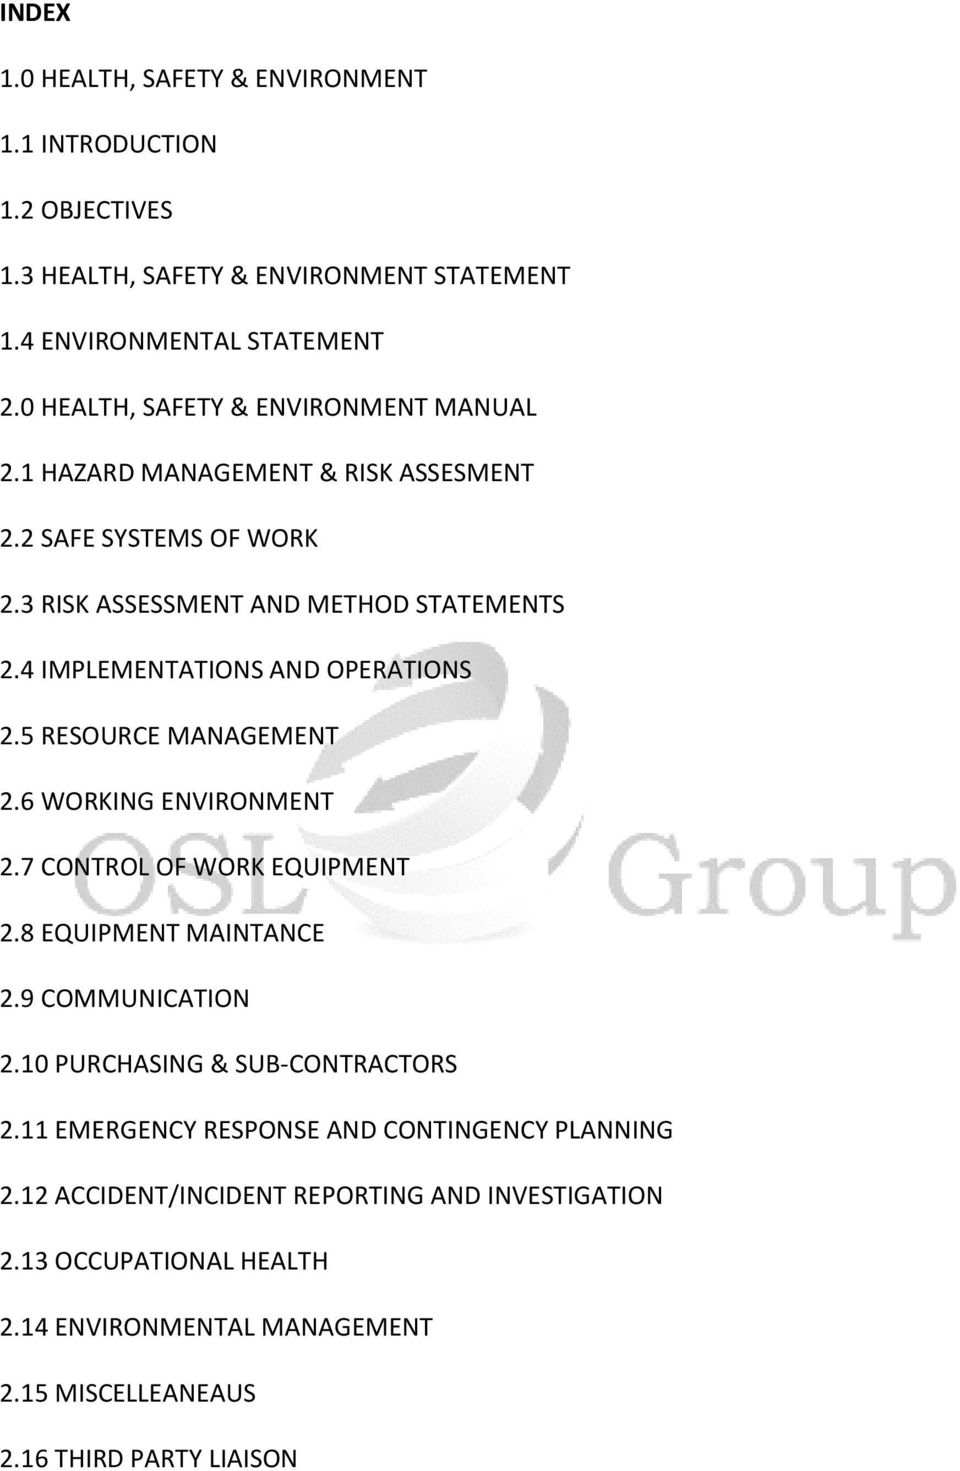 4 IMPLEMENTATIONS AND OPERATIONS 2.5 RESOURCE MANAGEMENT 2.6 WORKING ENVIRONMENT 2.7 CONTROL OF WORK EQUIPMENT 2.8 EQUIPMENT MAINTANCE 2.9 COMMUNICATION 2.